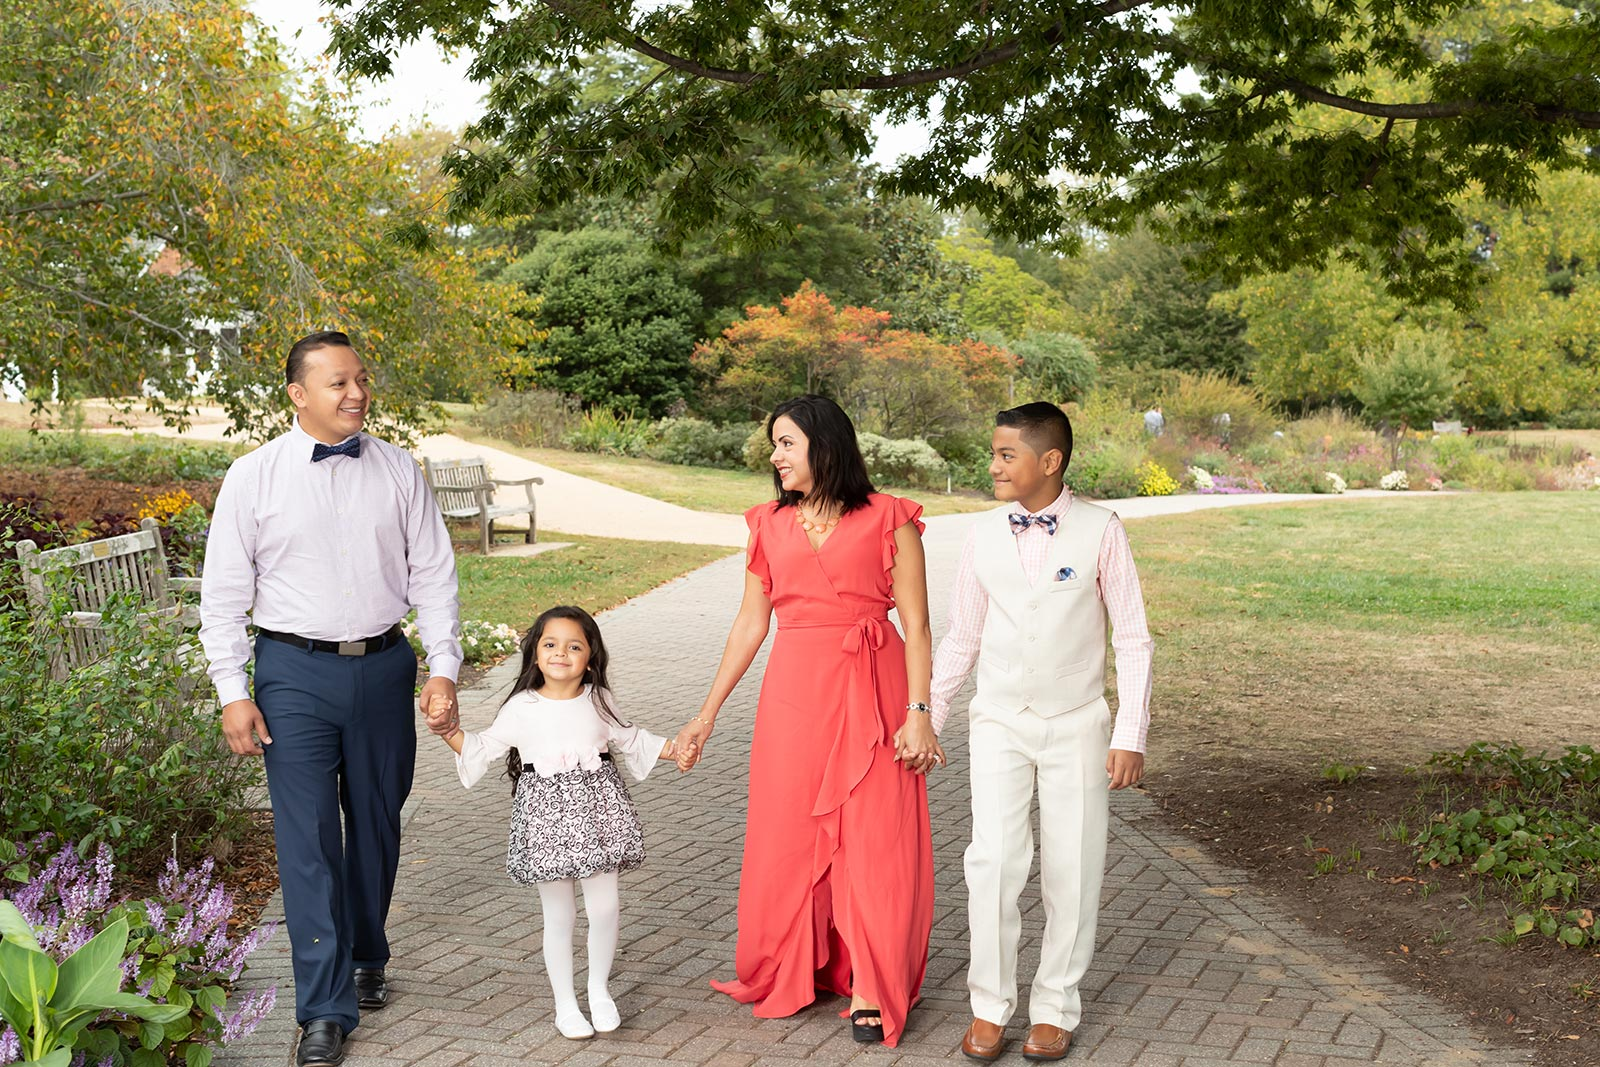 Lifestyle family photography at the Green Spring Gardens, Alexandria VA